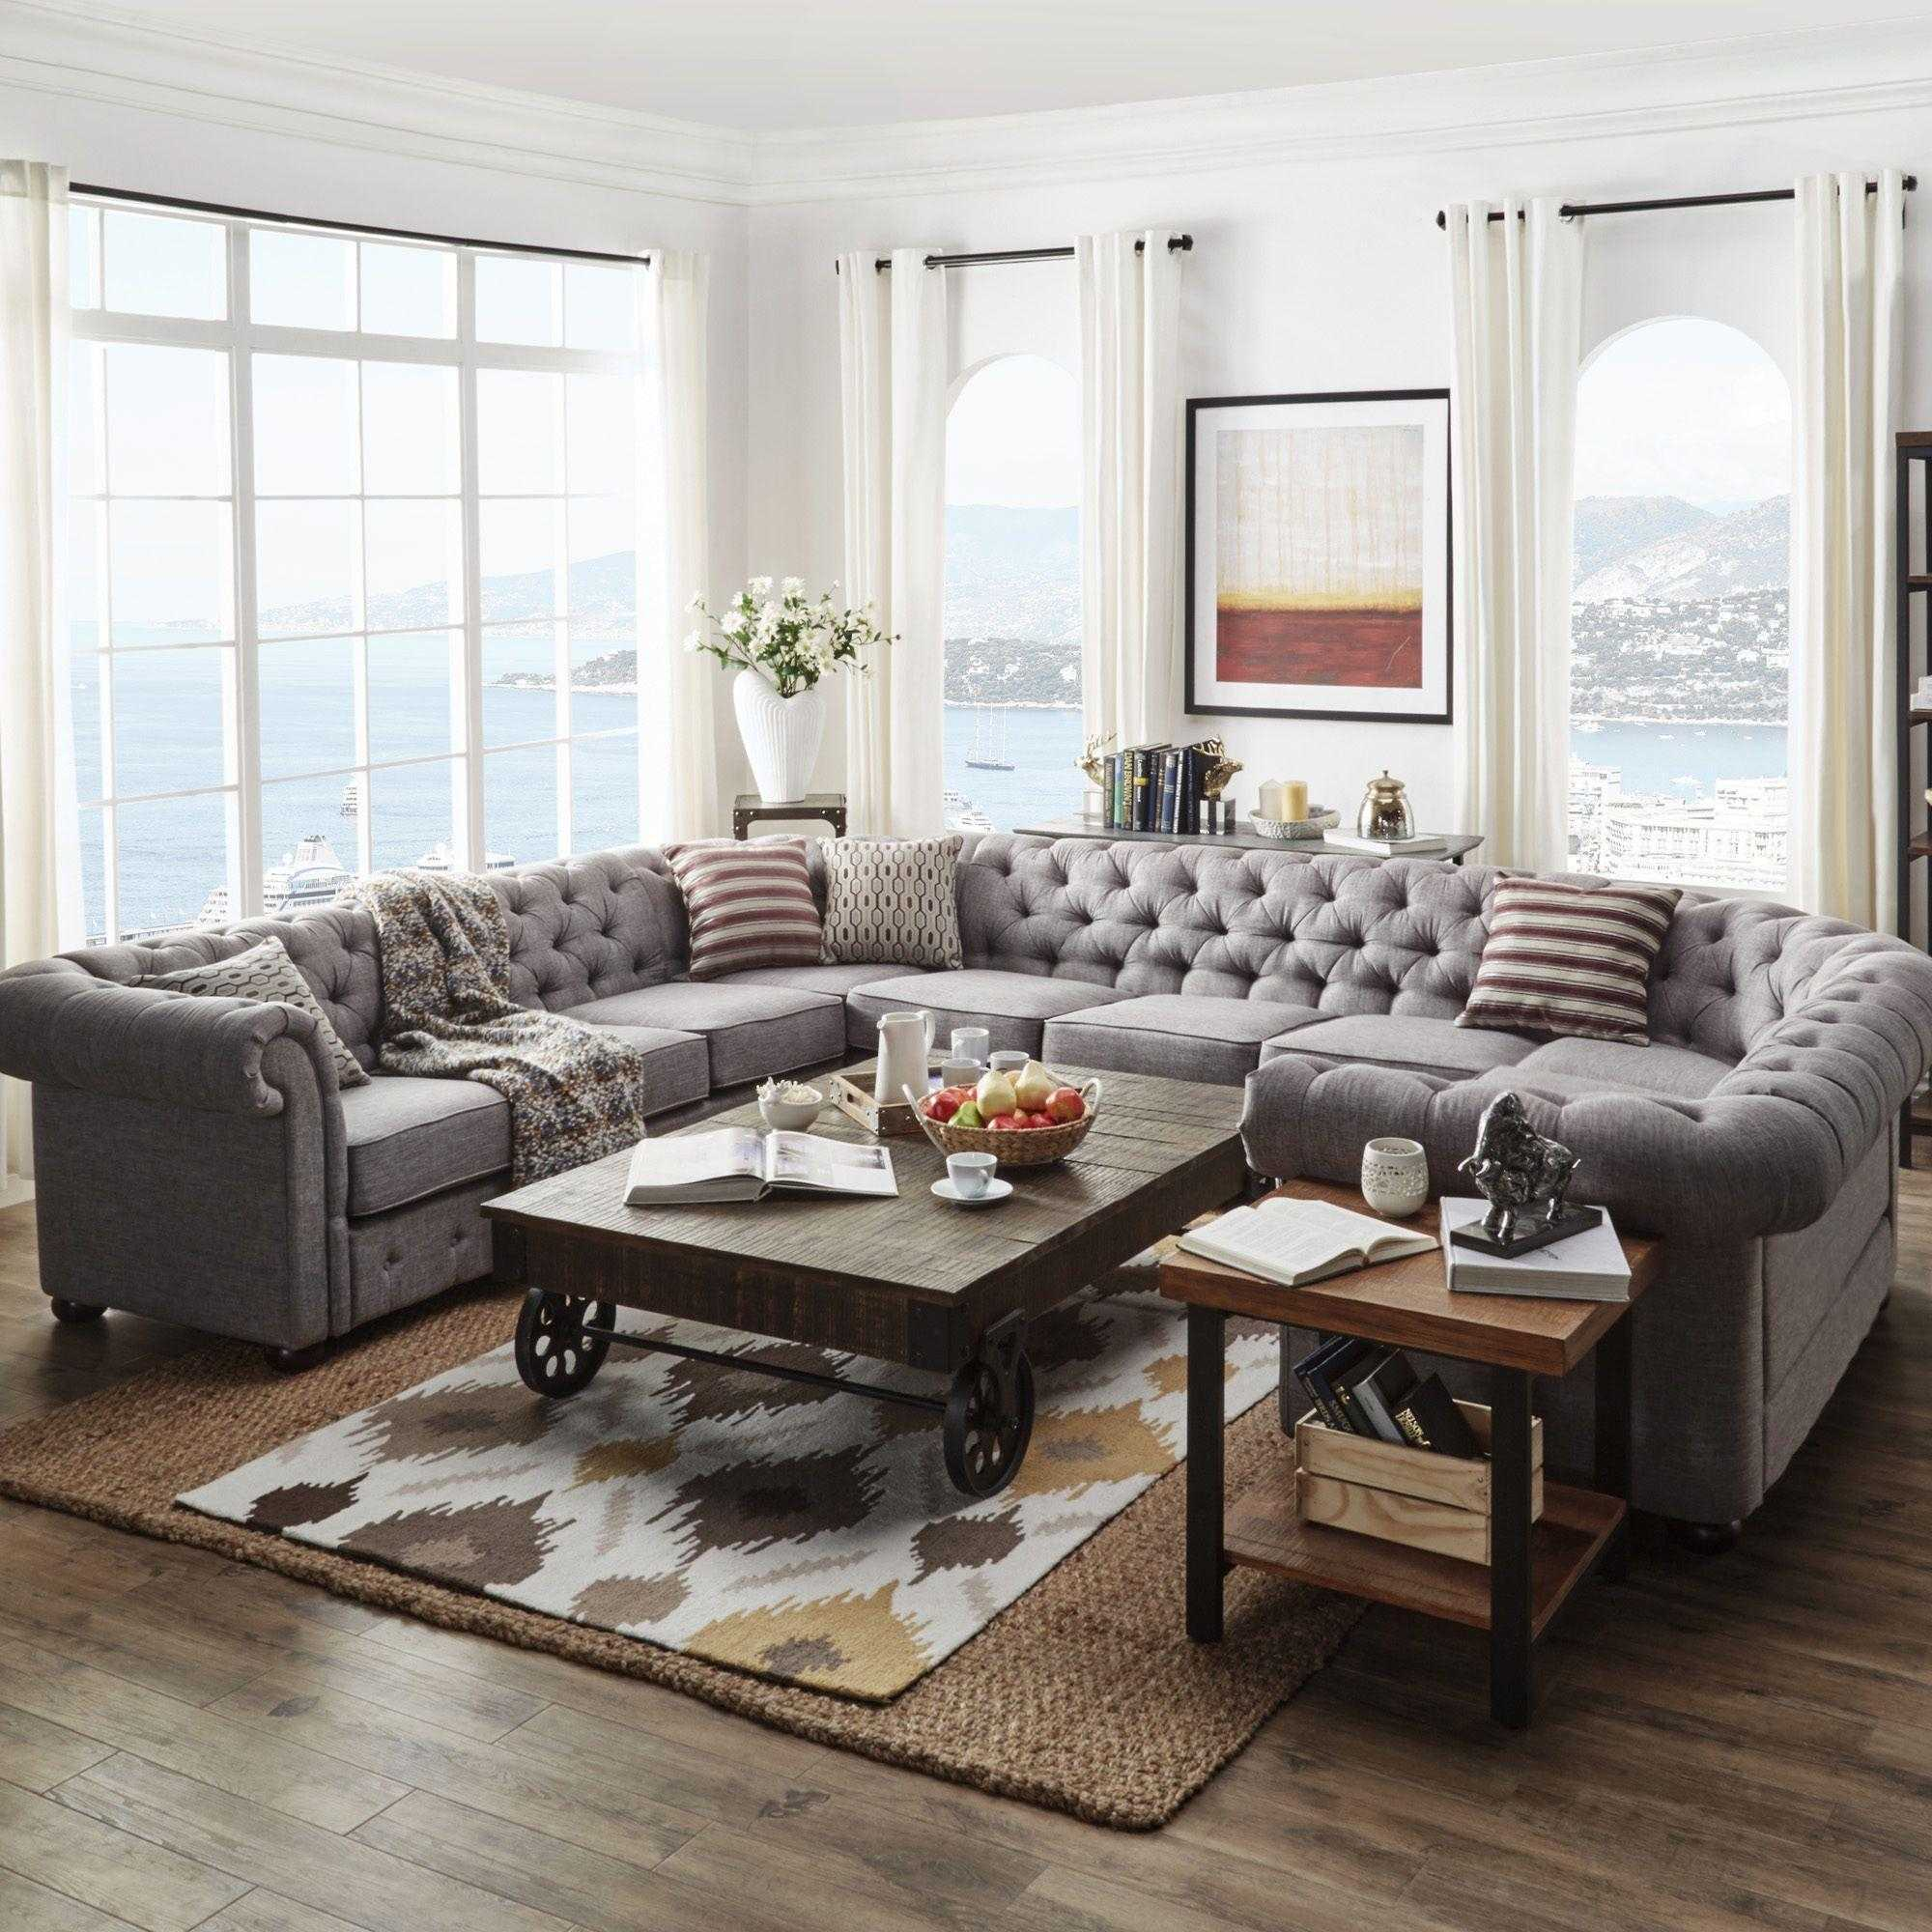 rooms coffee table sets tables trends including fabulous living room set ideas couches accent chairs latest home design kids with acrylic nesting threshold mirrored reclaimed wood